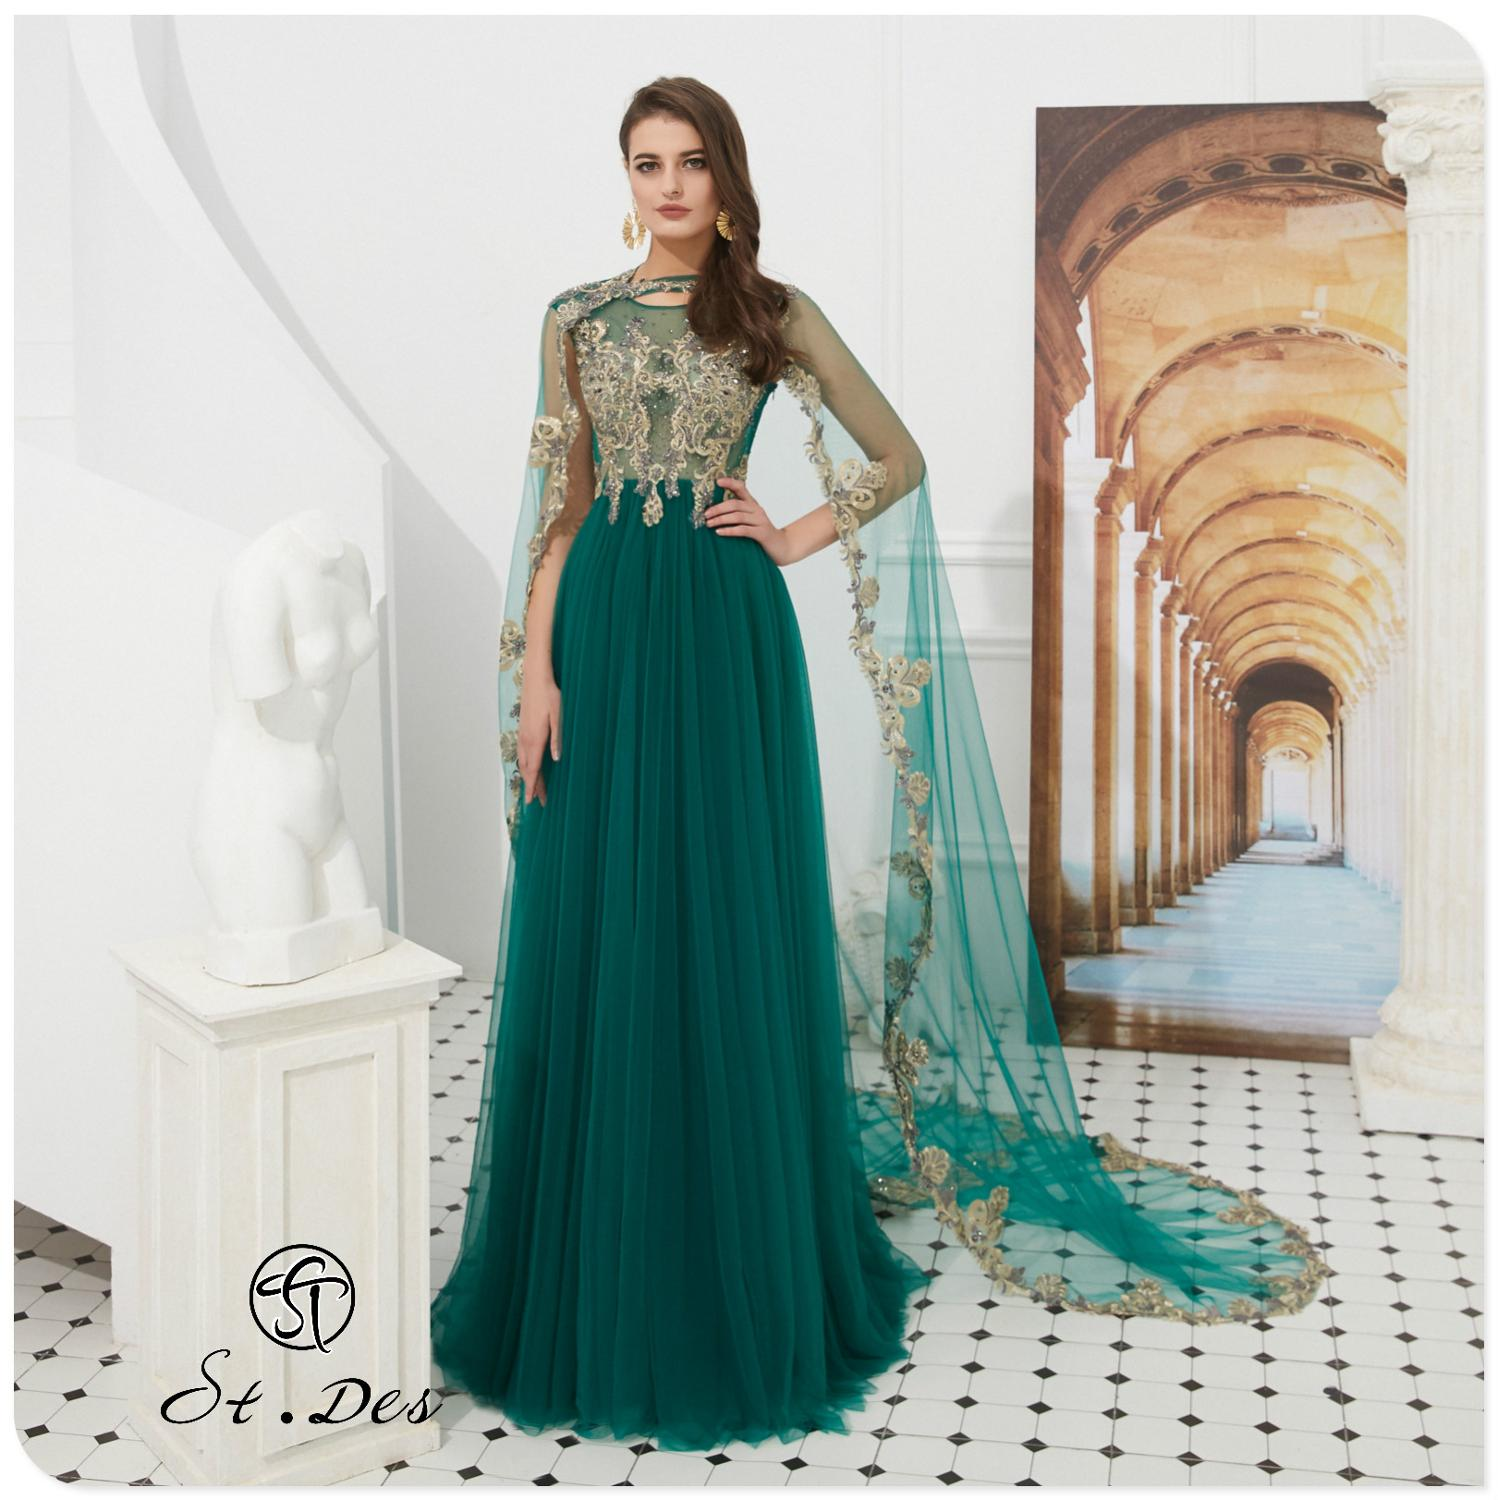 2020 S.T.DES A-line Cape Cloak Round-Neck Green Embroidery Short Sleeve Evening Dresses Long Party Gown Formal Dress